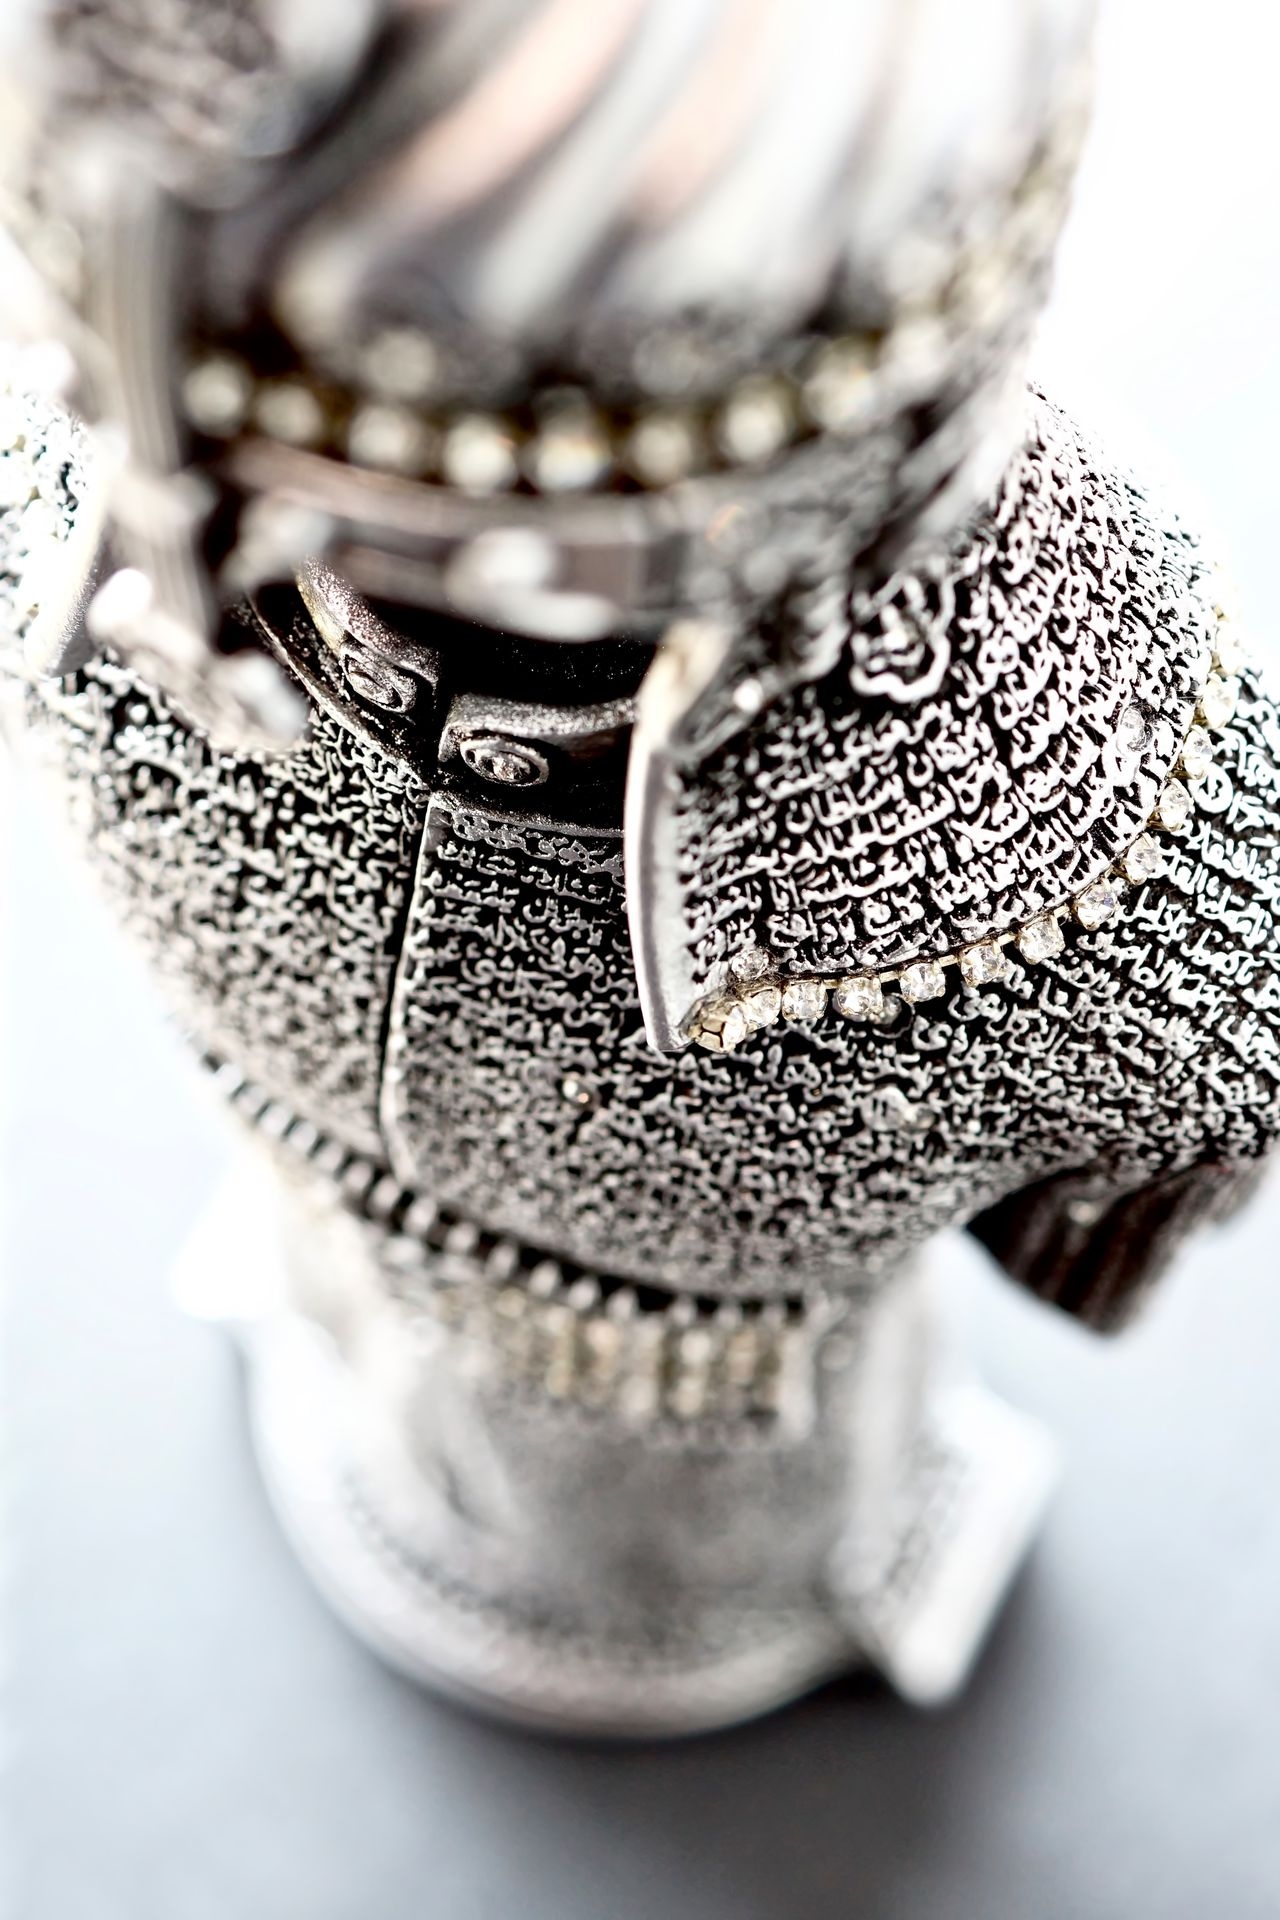 Arabic Armour Close-up Intricate Islam Macro Metal No People Statue Top Down White Background